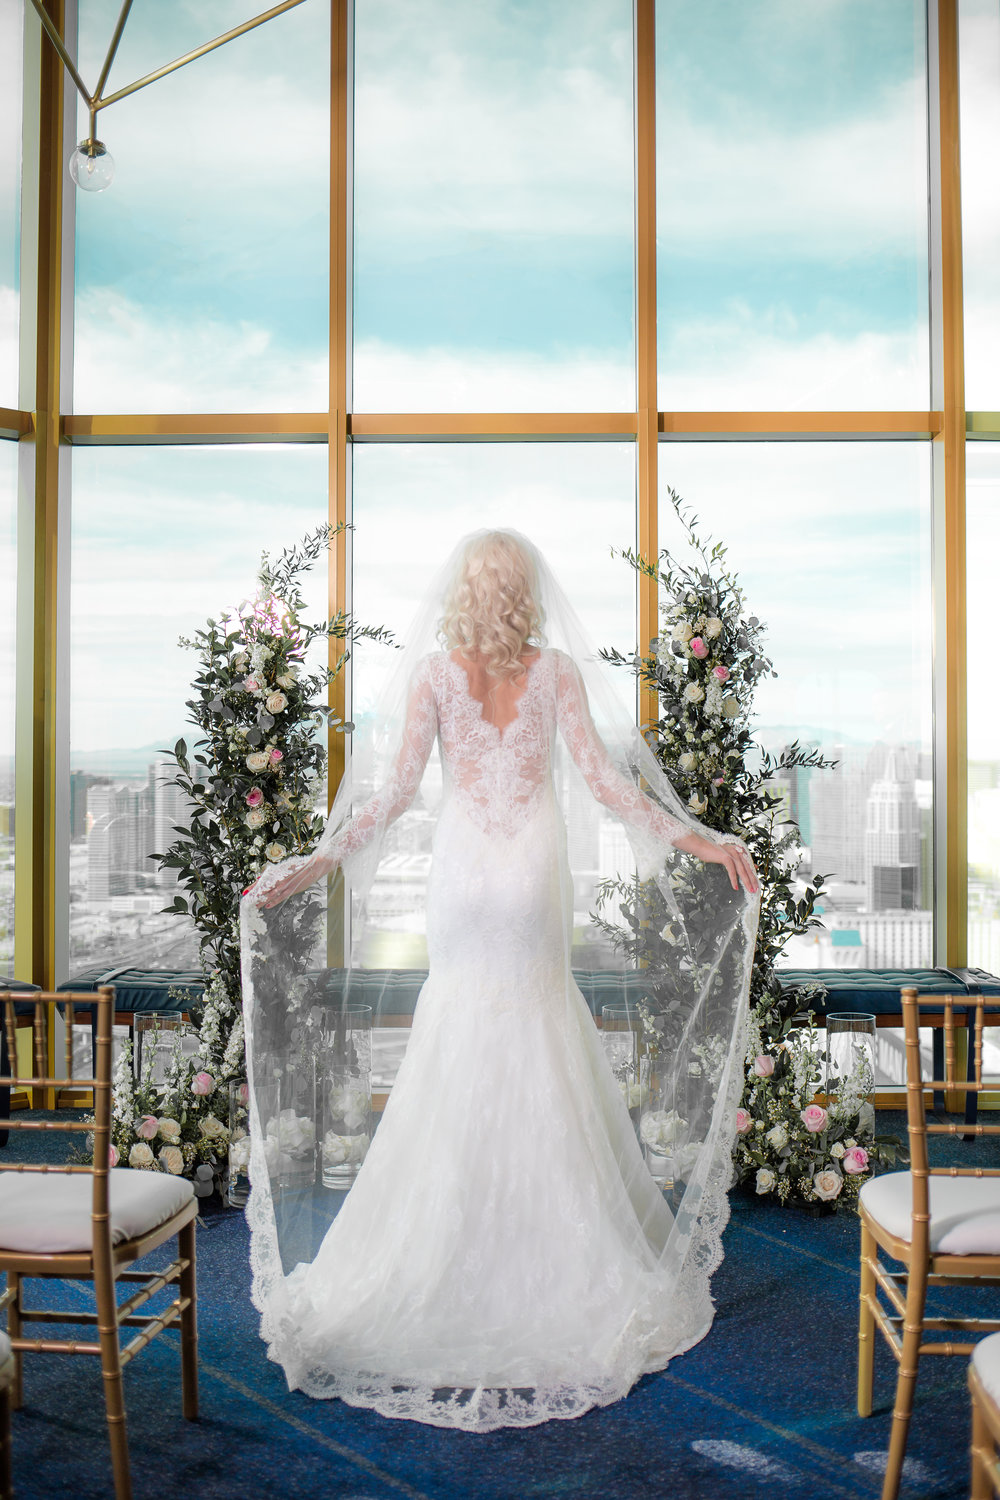 Deep V Back wedding gown in lace by Olv.   Styled Wedding Shoot inspired by French Blue by Las Vegas Wedding Planner Andrea Eppolito.  Photography by   Rebecca Marie  .  Floral and Decor by   By Dzign  .  Beauty by   Amelia C & Co  .  Shot at Rivea at T  he Delano.